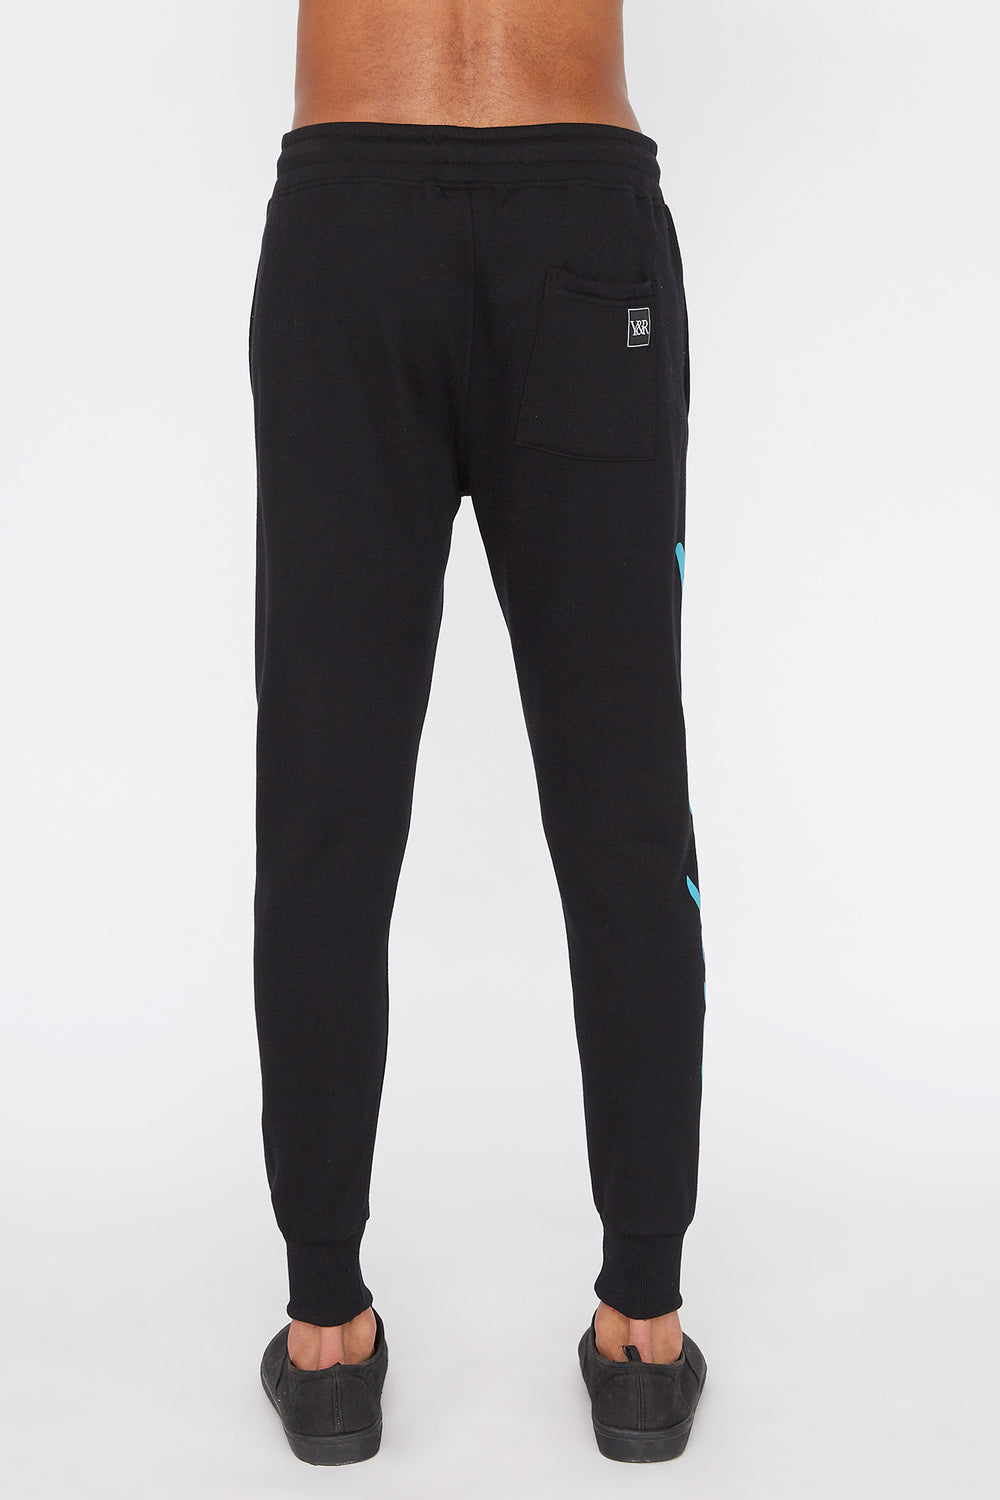 Young & Reckless Mens Retro Script Jogger Black